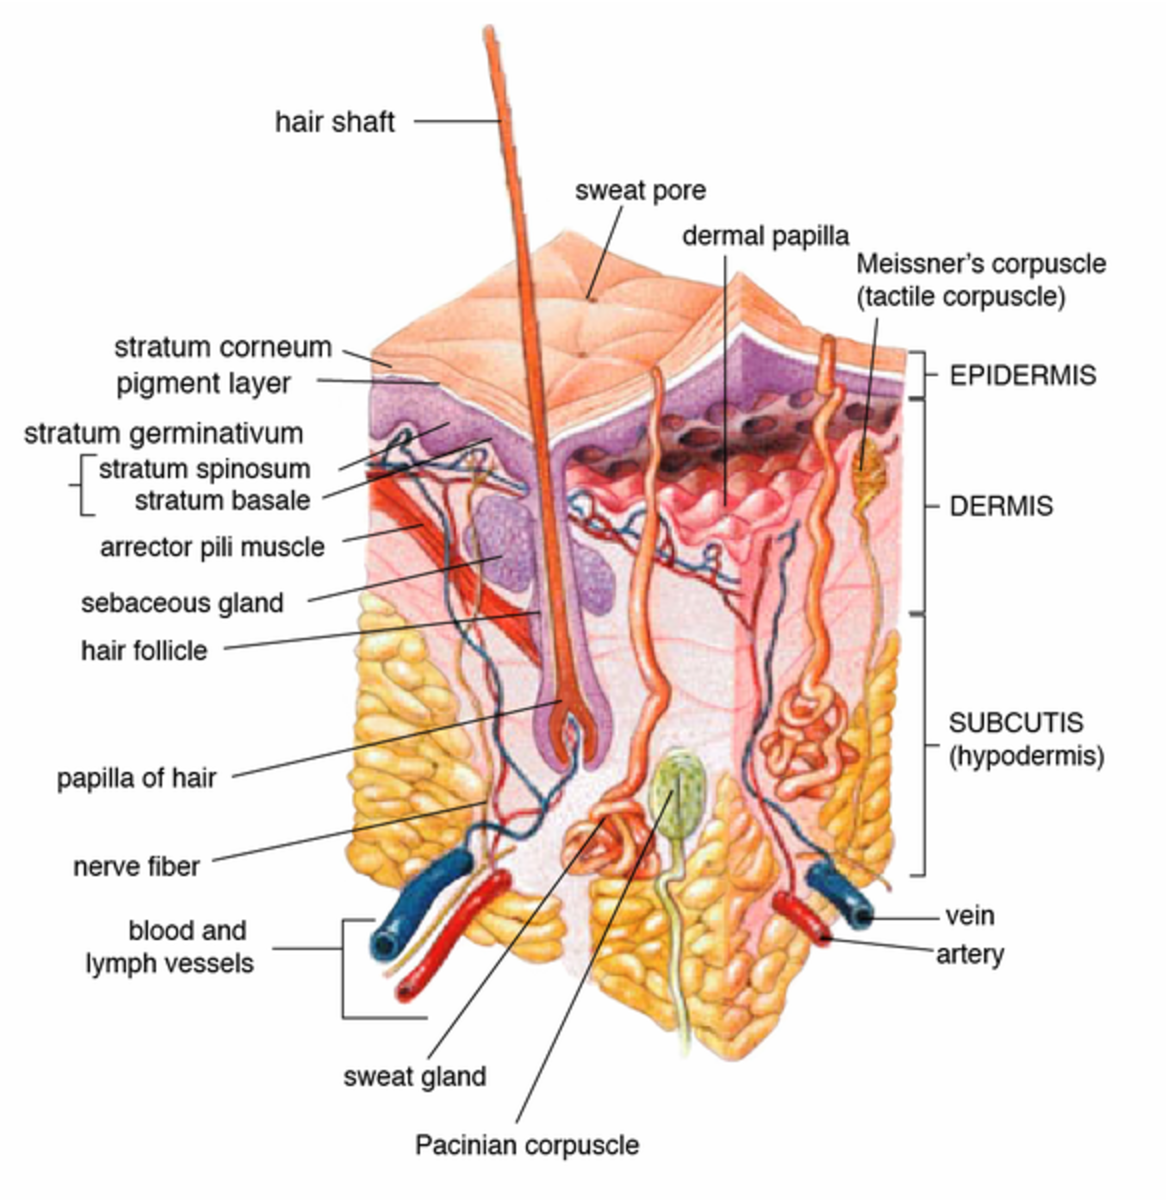 A cross section of human skin, with the fat or hypodermis shown directly beneath the skin or epidermis.